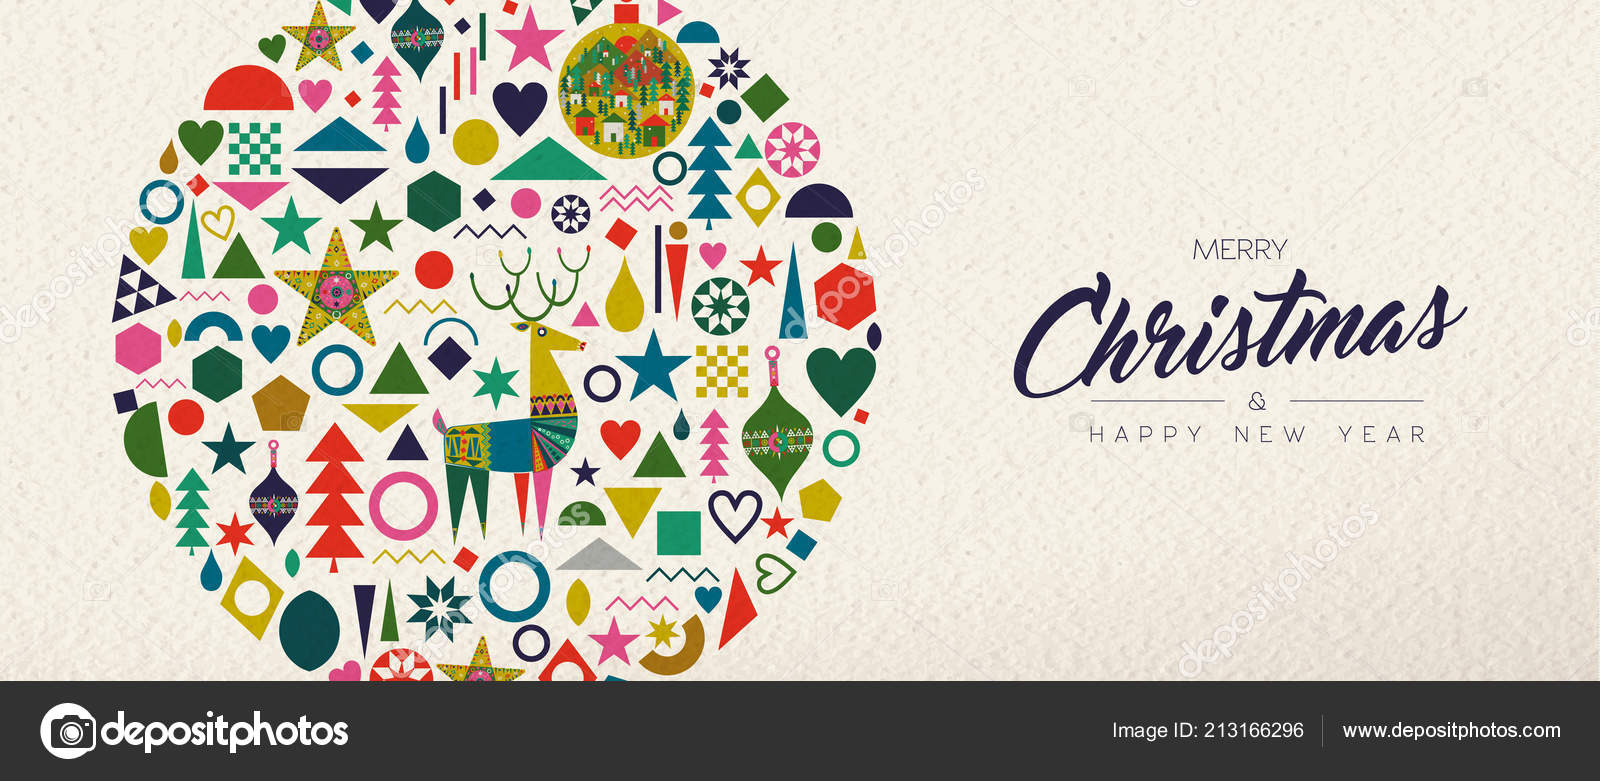 merry christmas happy new year banner illustration vintage geometric shape stock vector